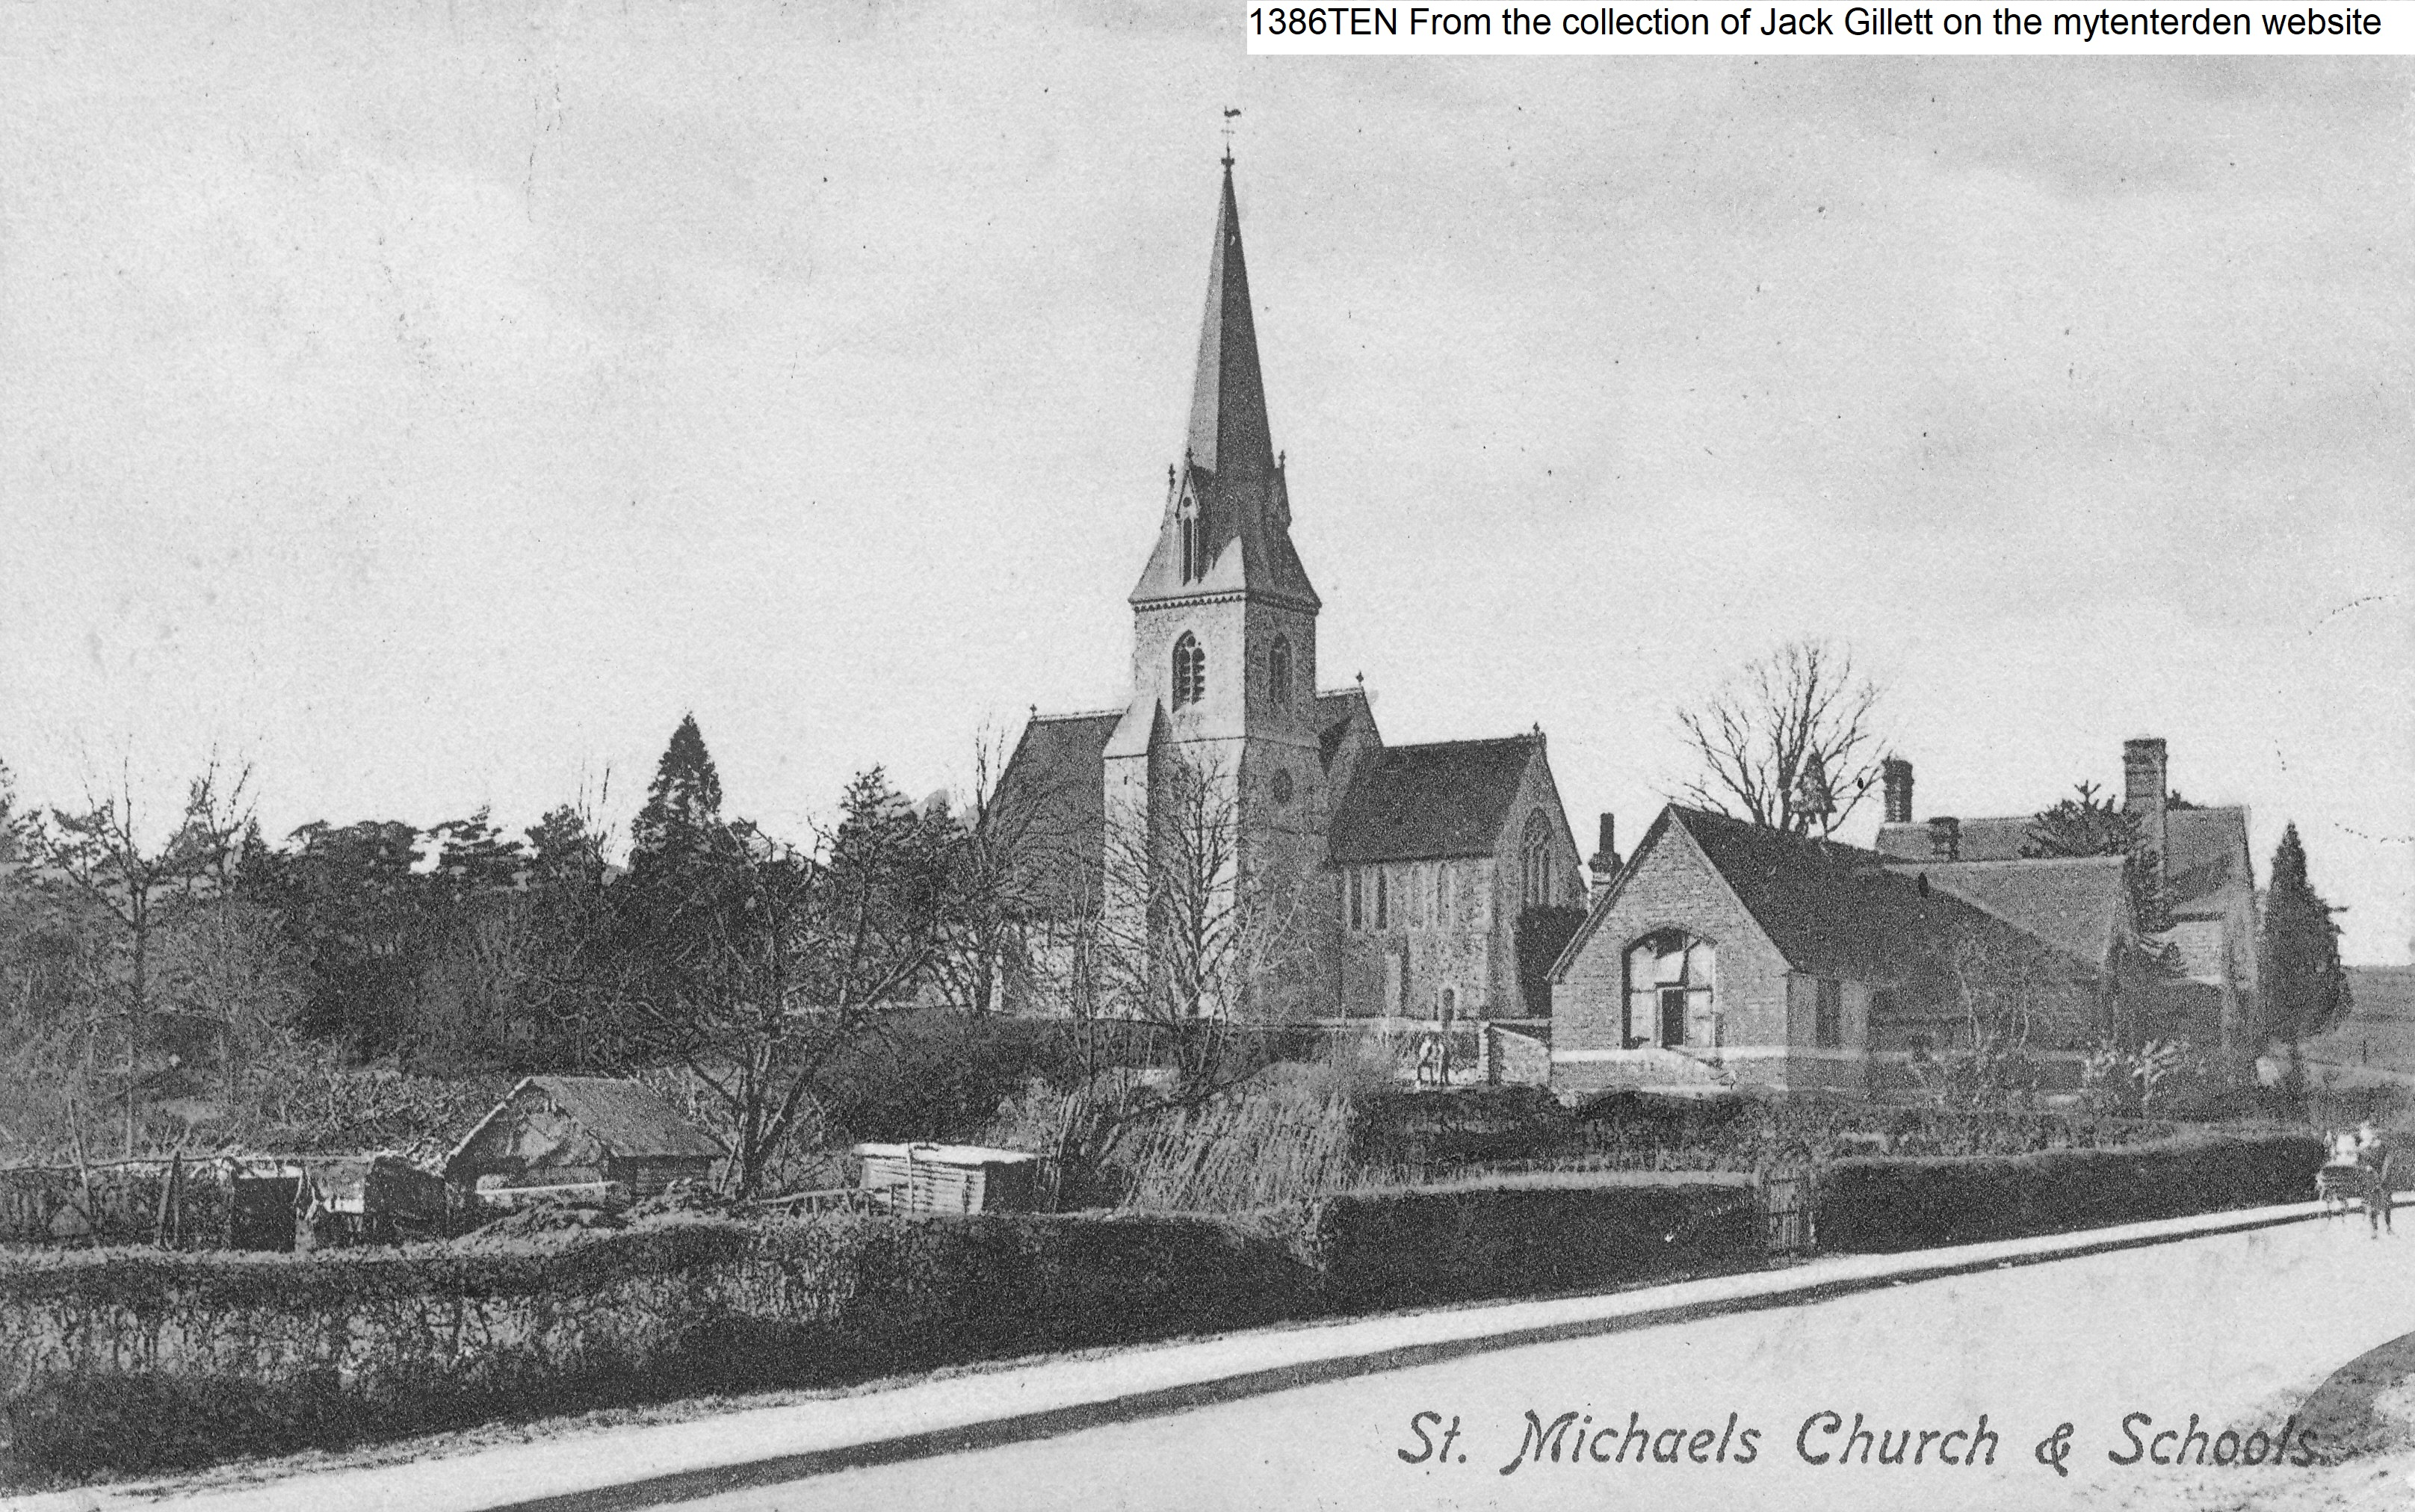 St Michaels Church & Schools